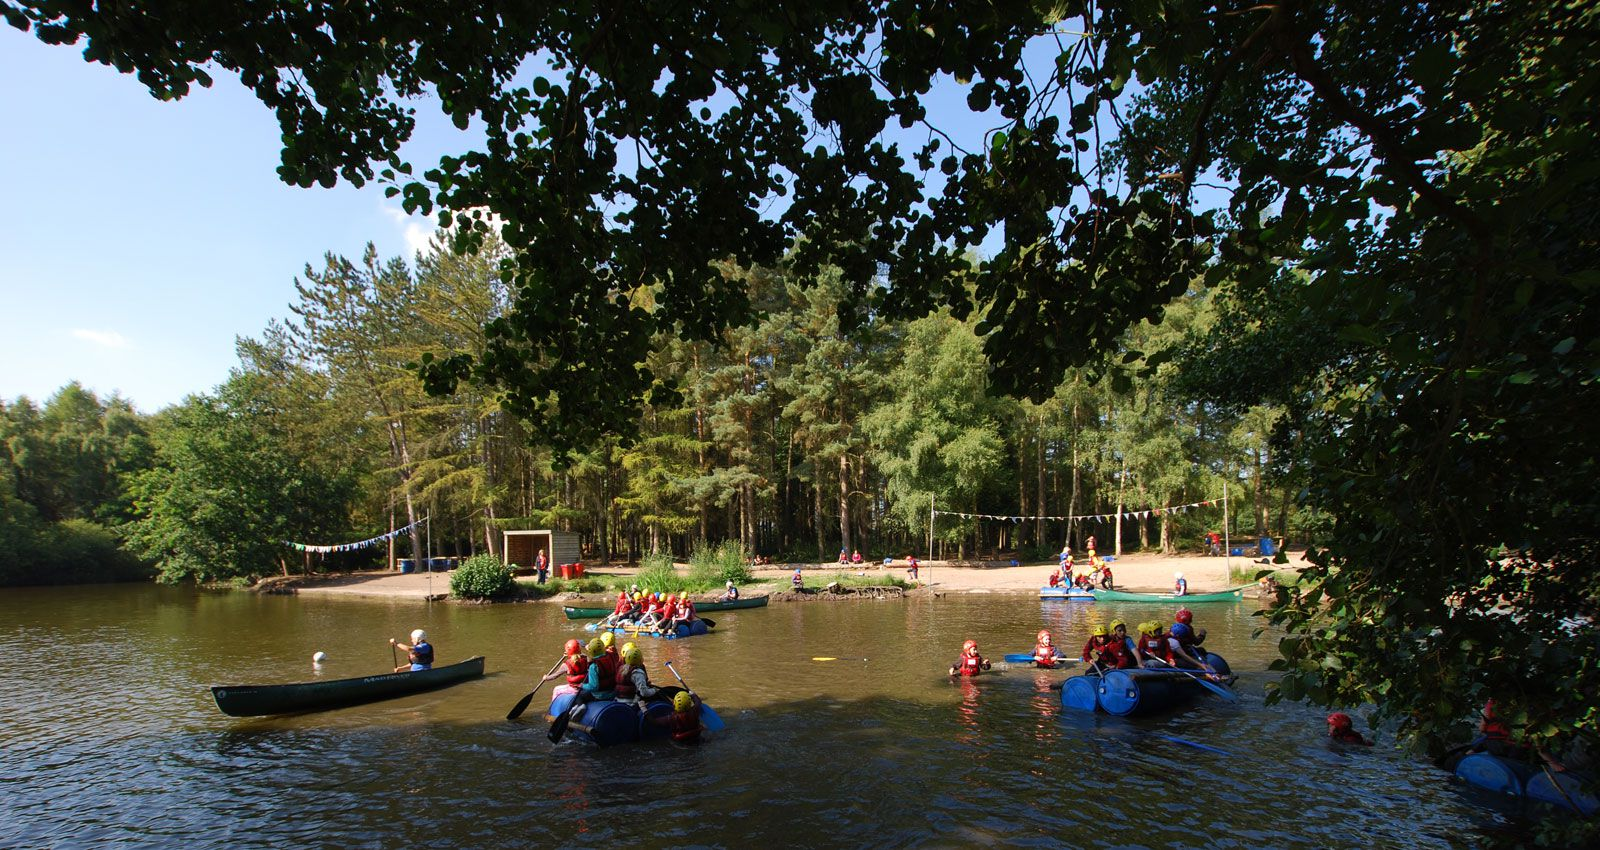 PGL Adventure Holidays - Specialist Holidays and Summer Camps for 7-17 year olds - PGL Centres and Accommodation